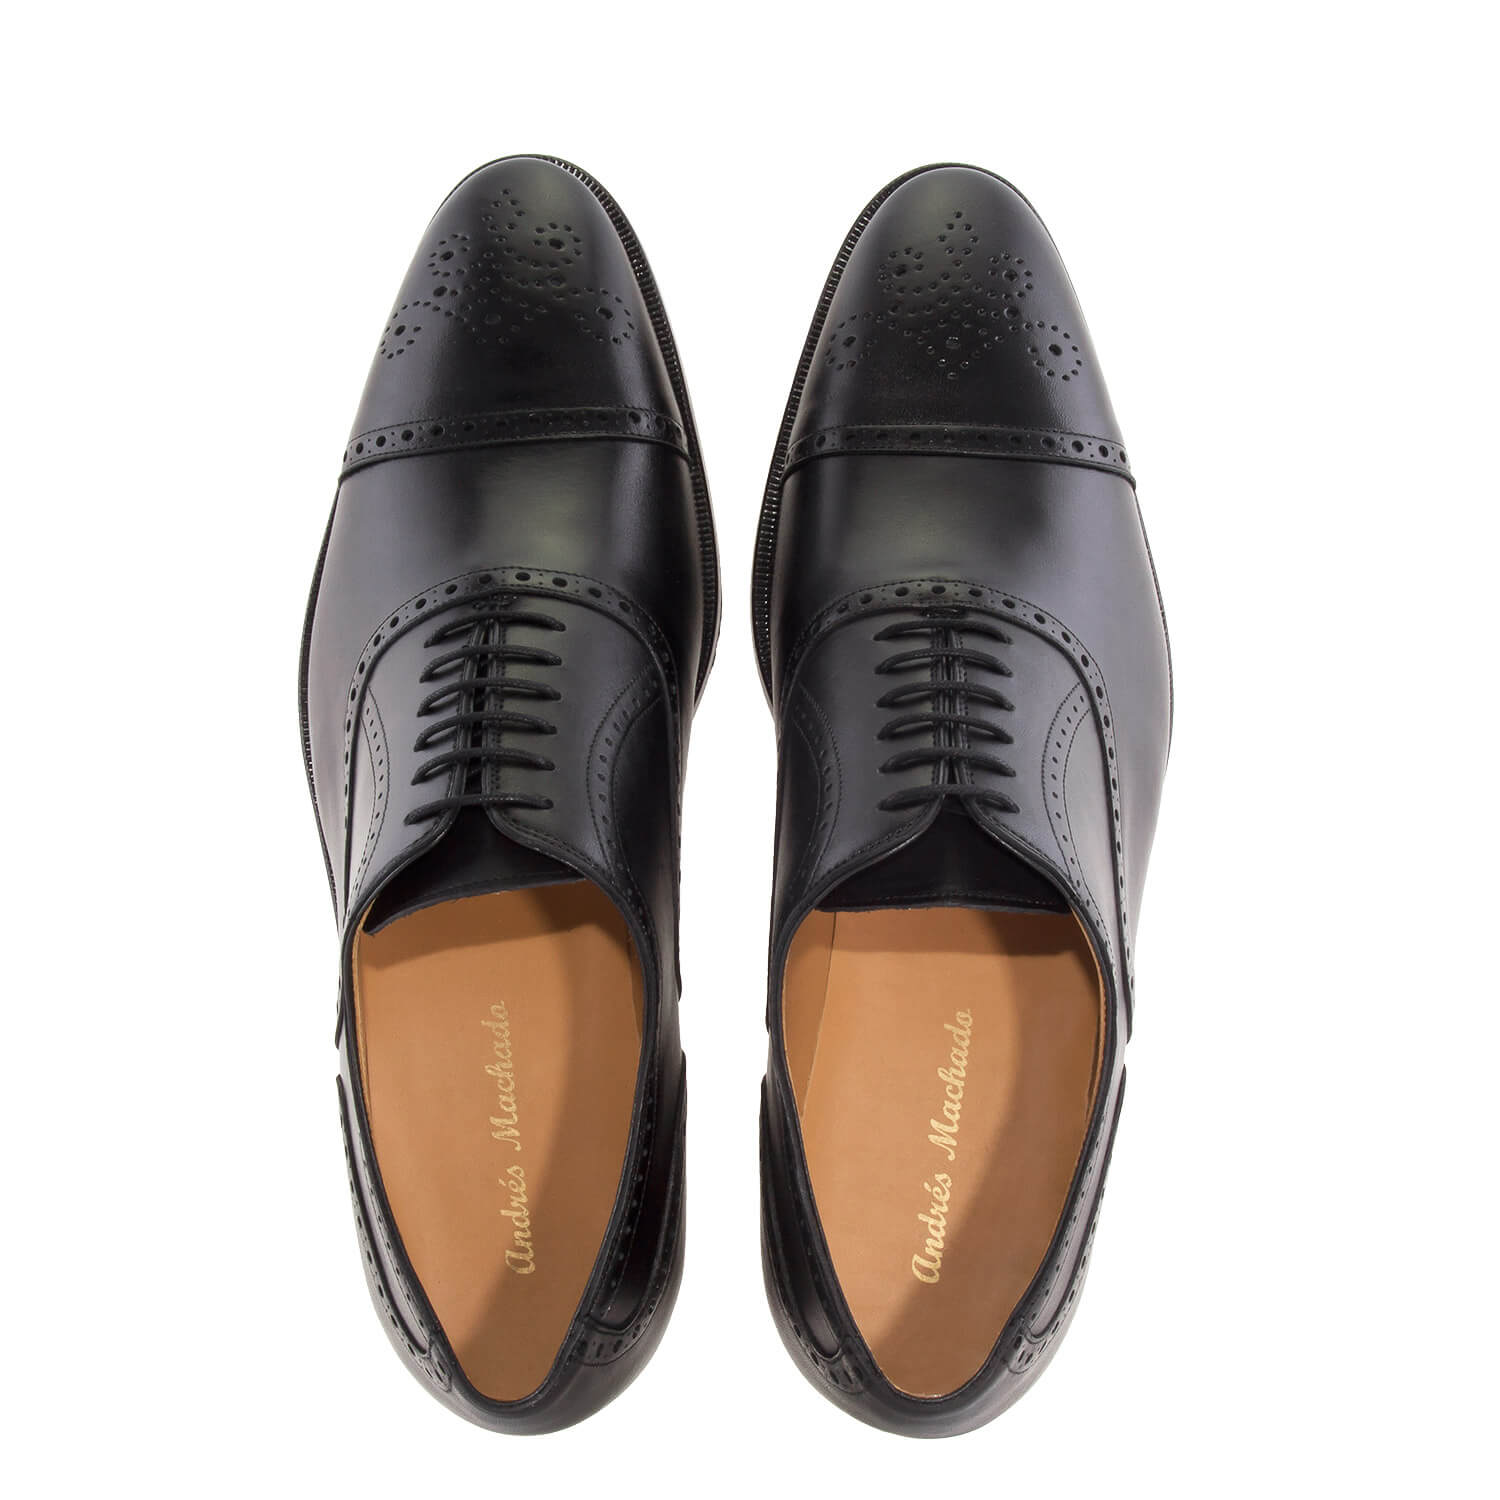 Oxford Shoes in Black Leather